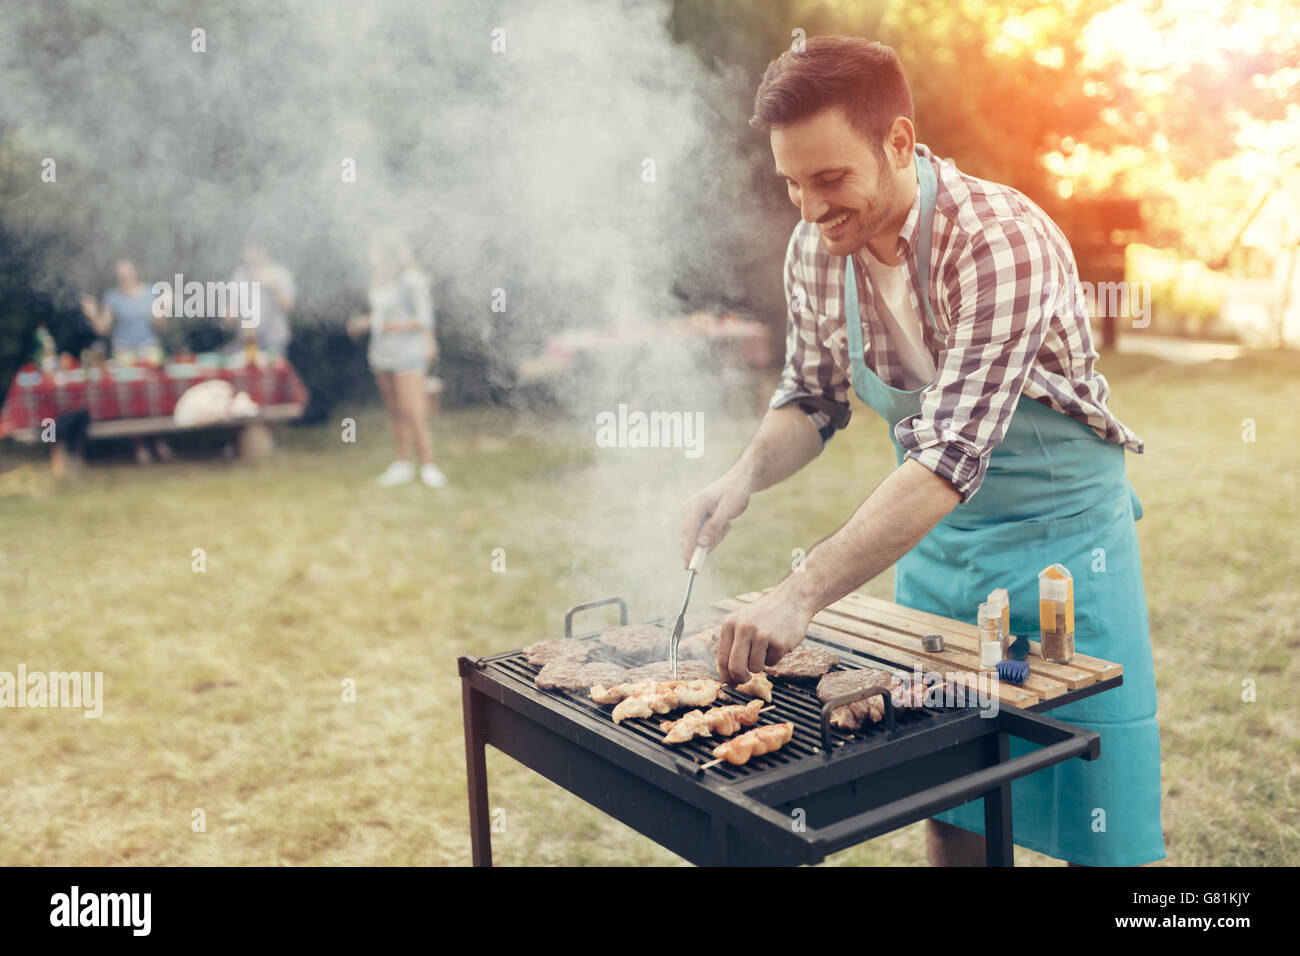 Barbecue in nature being done by friends - Stock Image